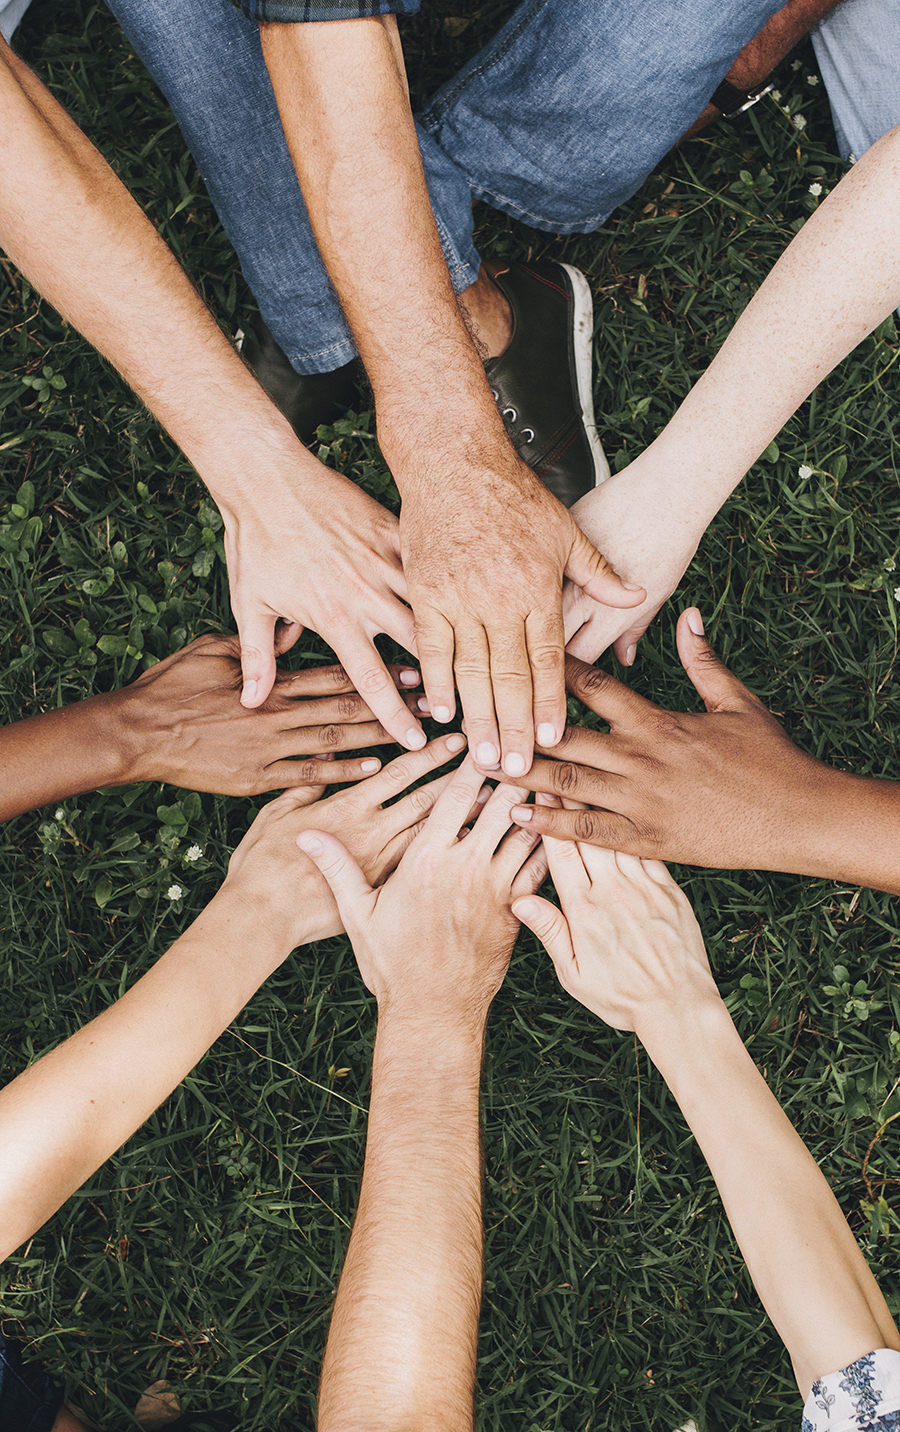 People stacking hands together in the park